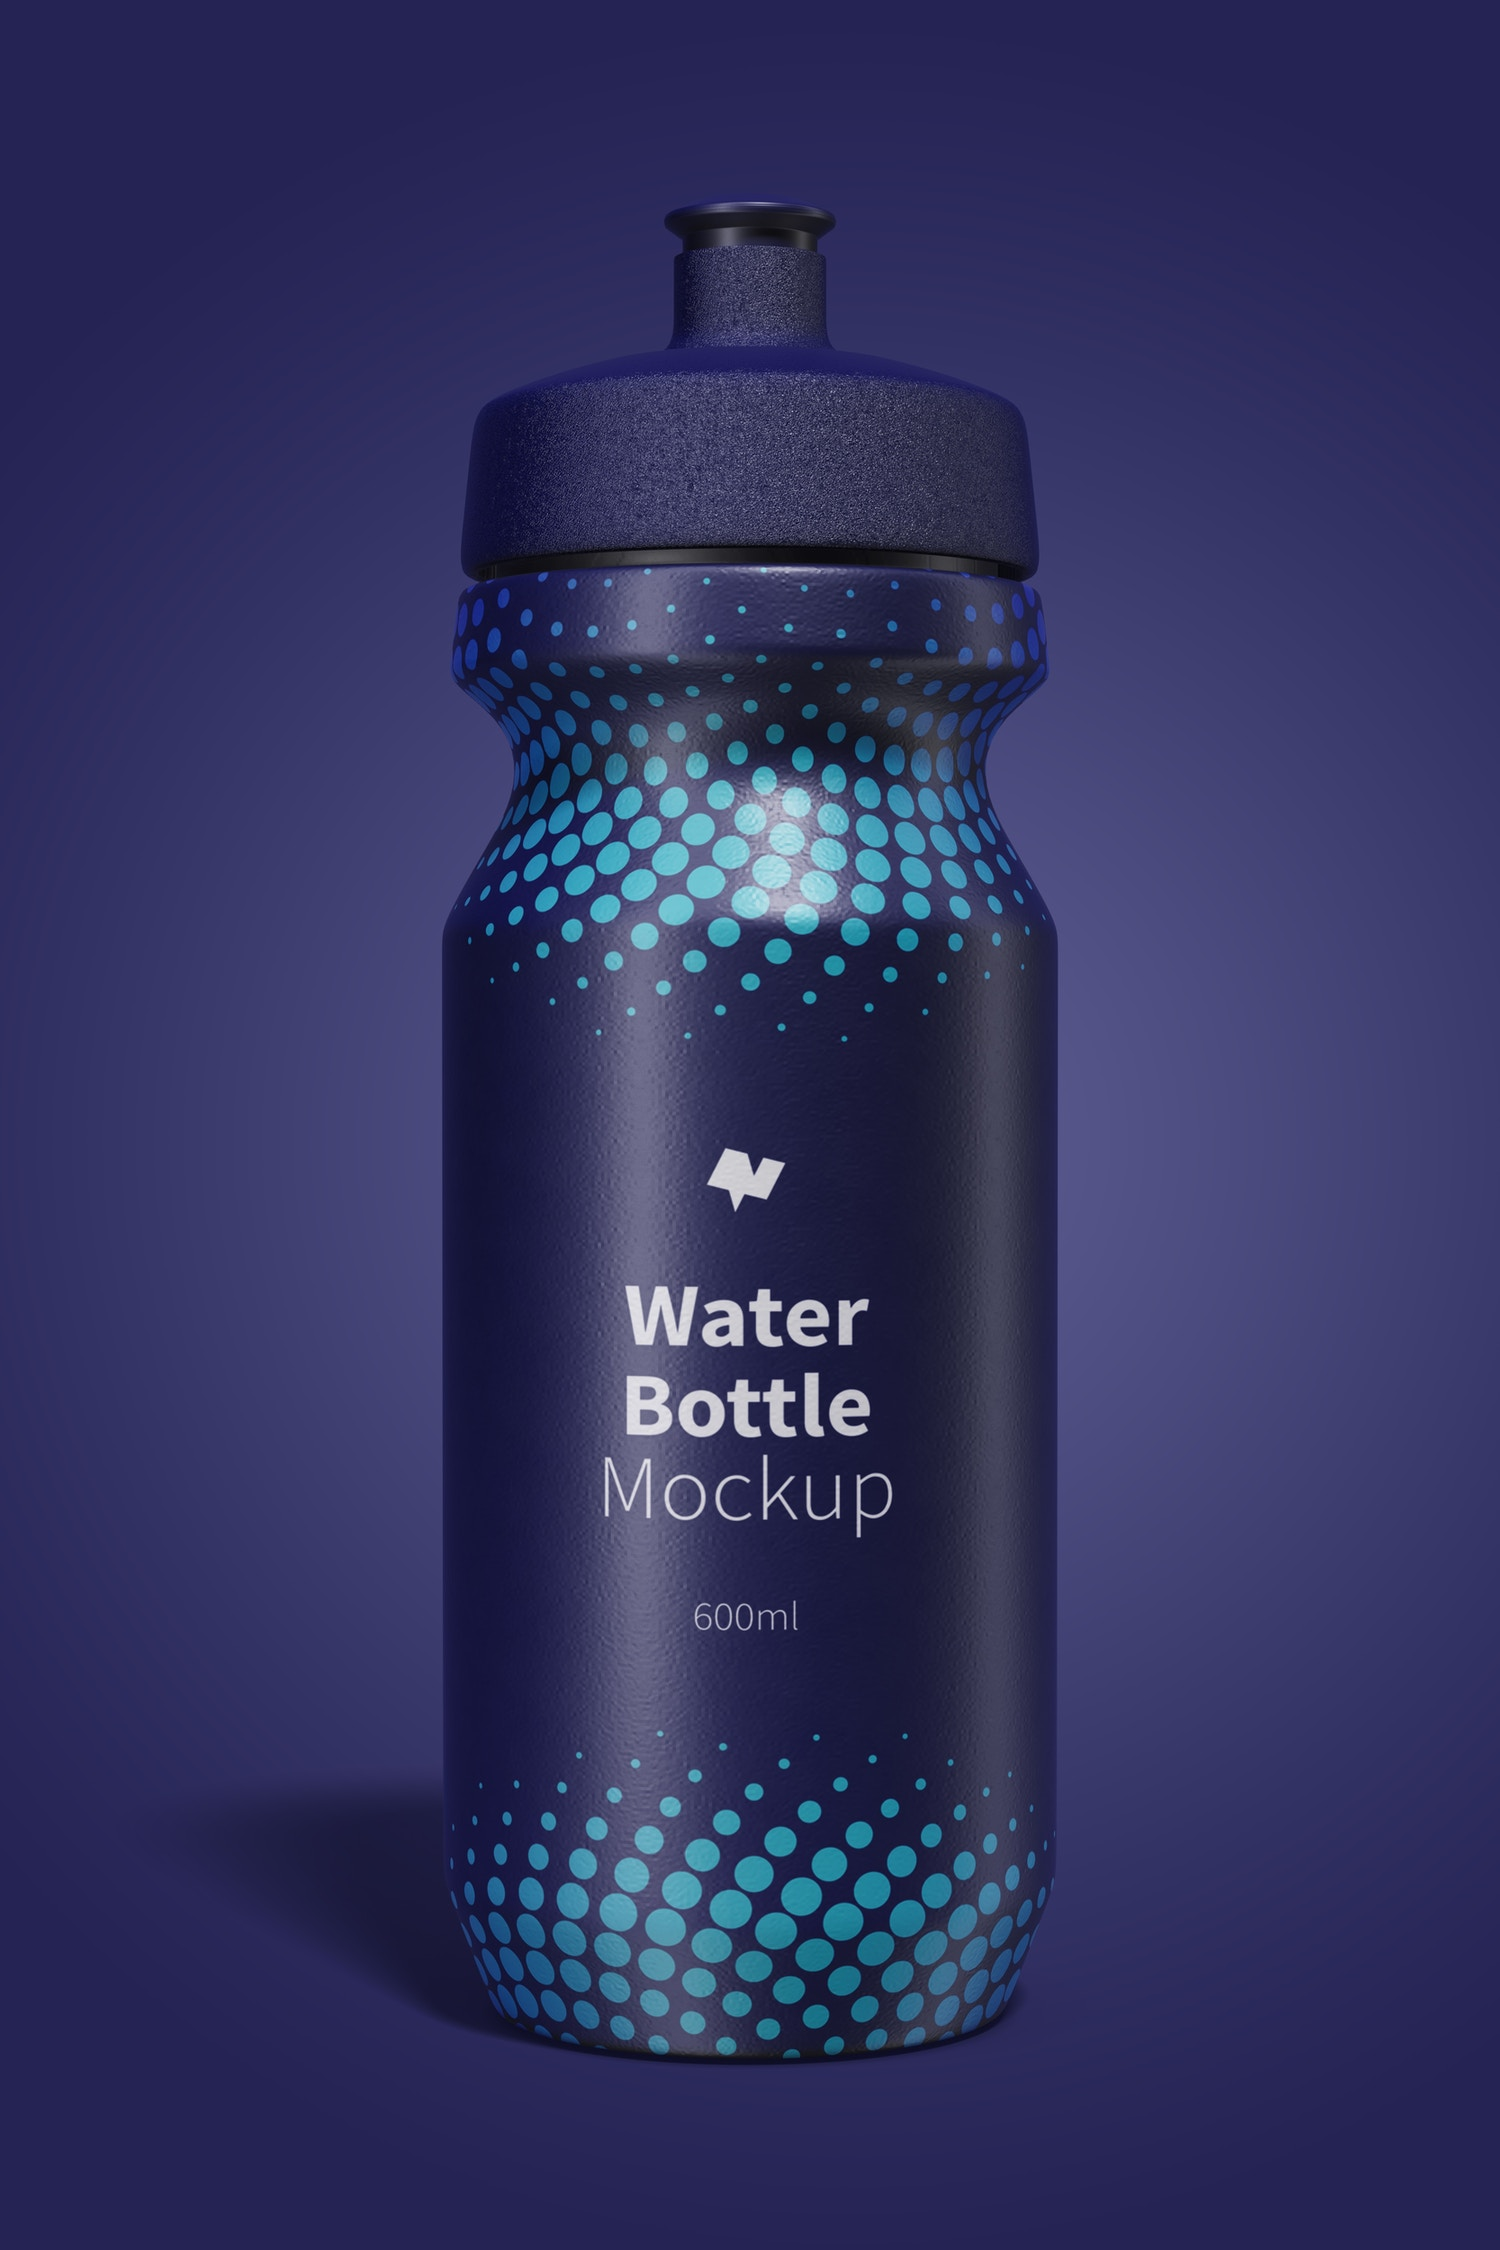 600ml Water Bottle Mockup, Front View